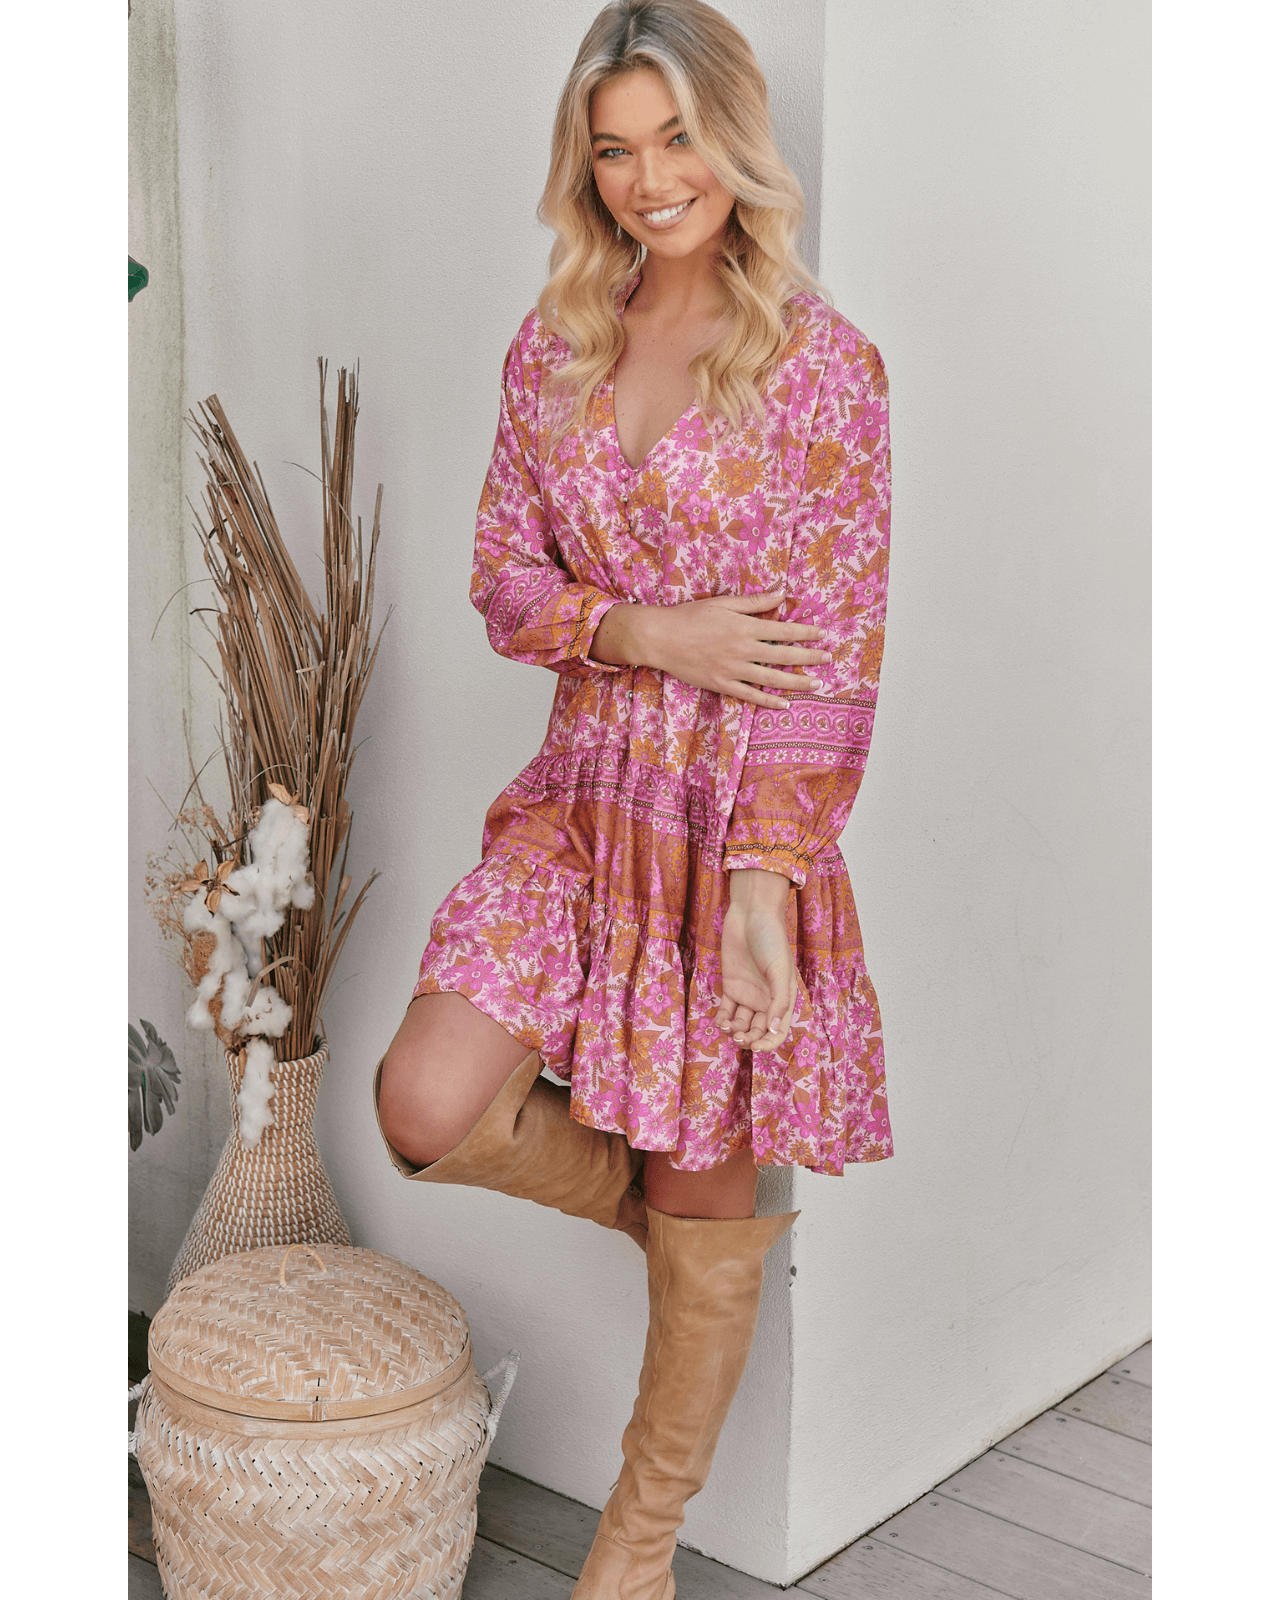 JAASE Payson Dress - Pink Dahlia